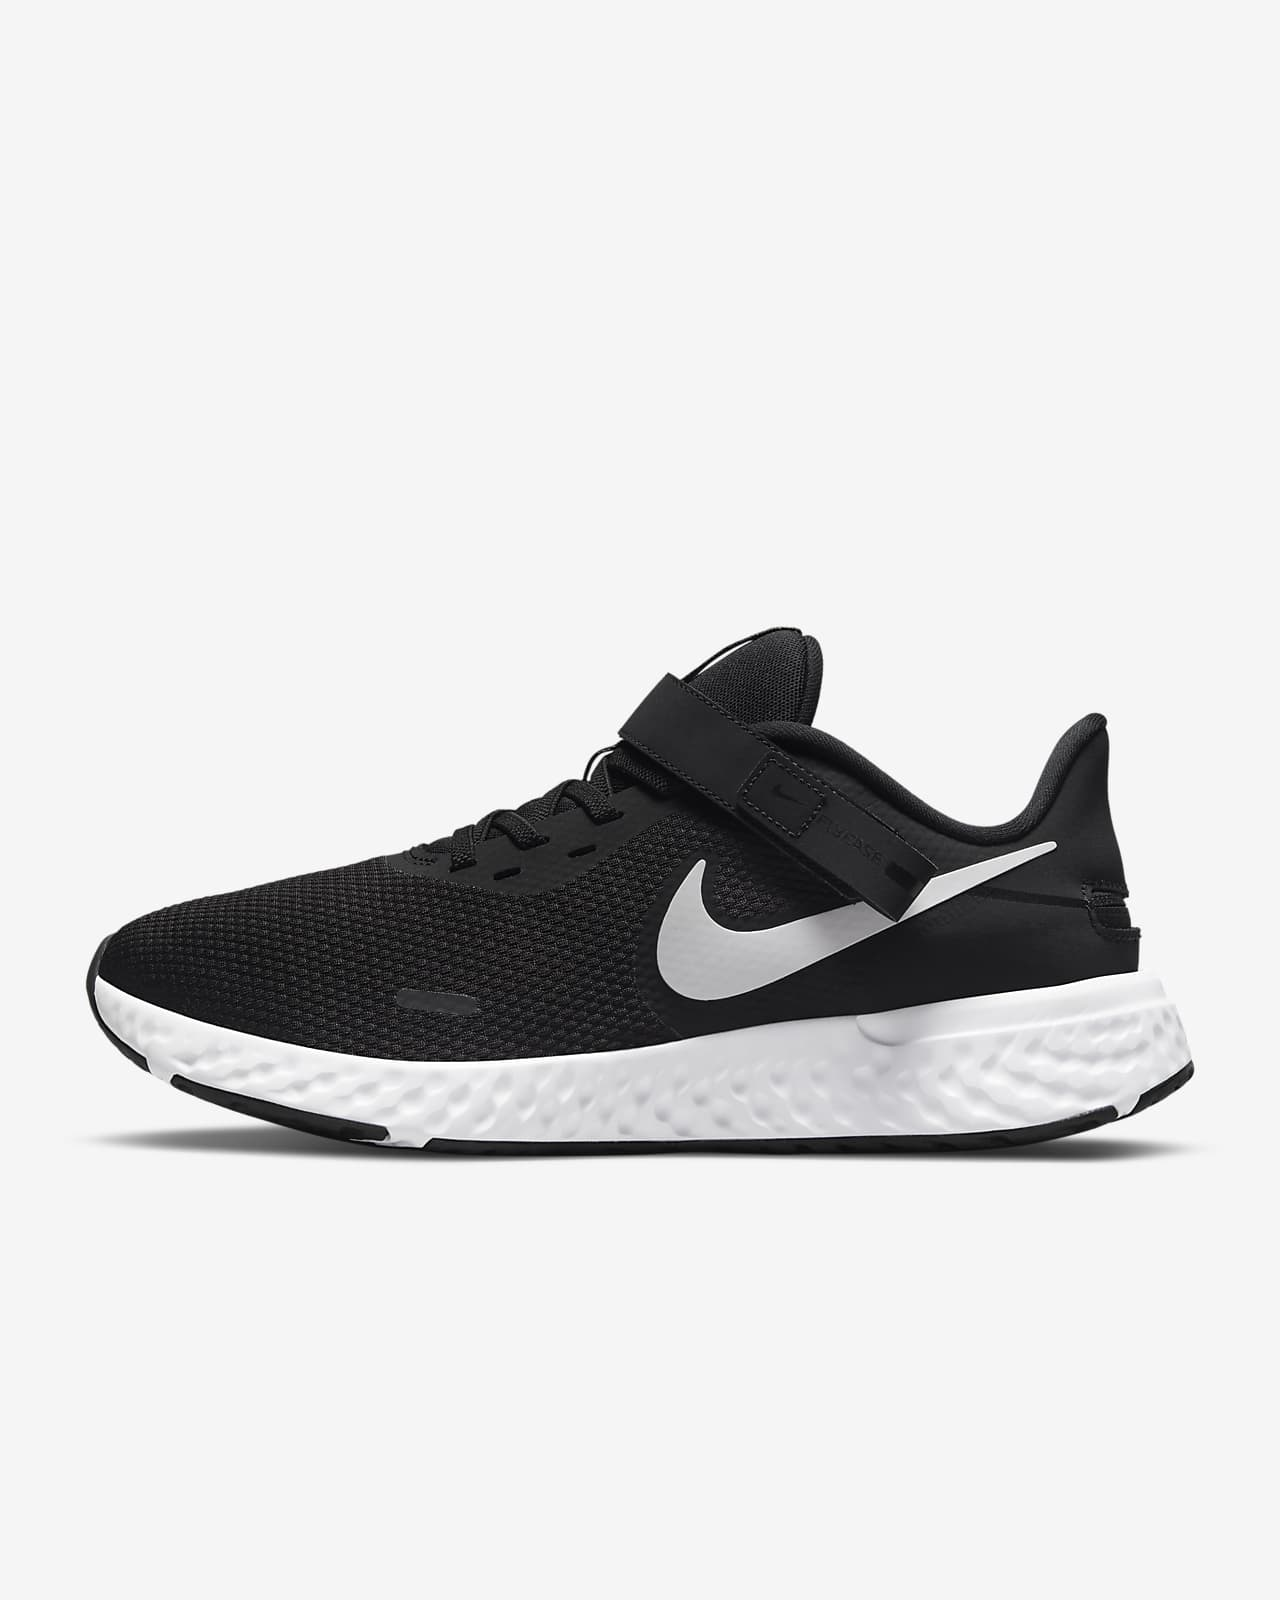 Chaussures de running Nike Revolution 5 FlyEase pour Homme (extra-large)